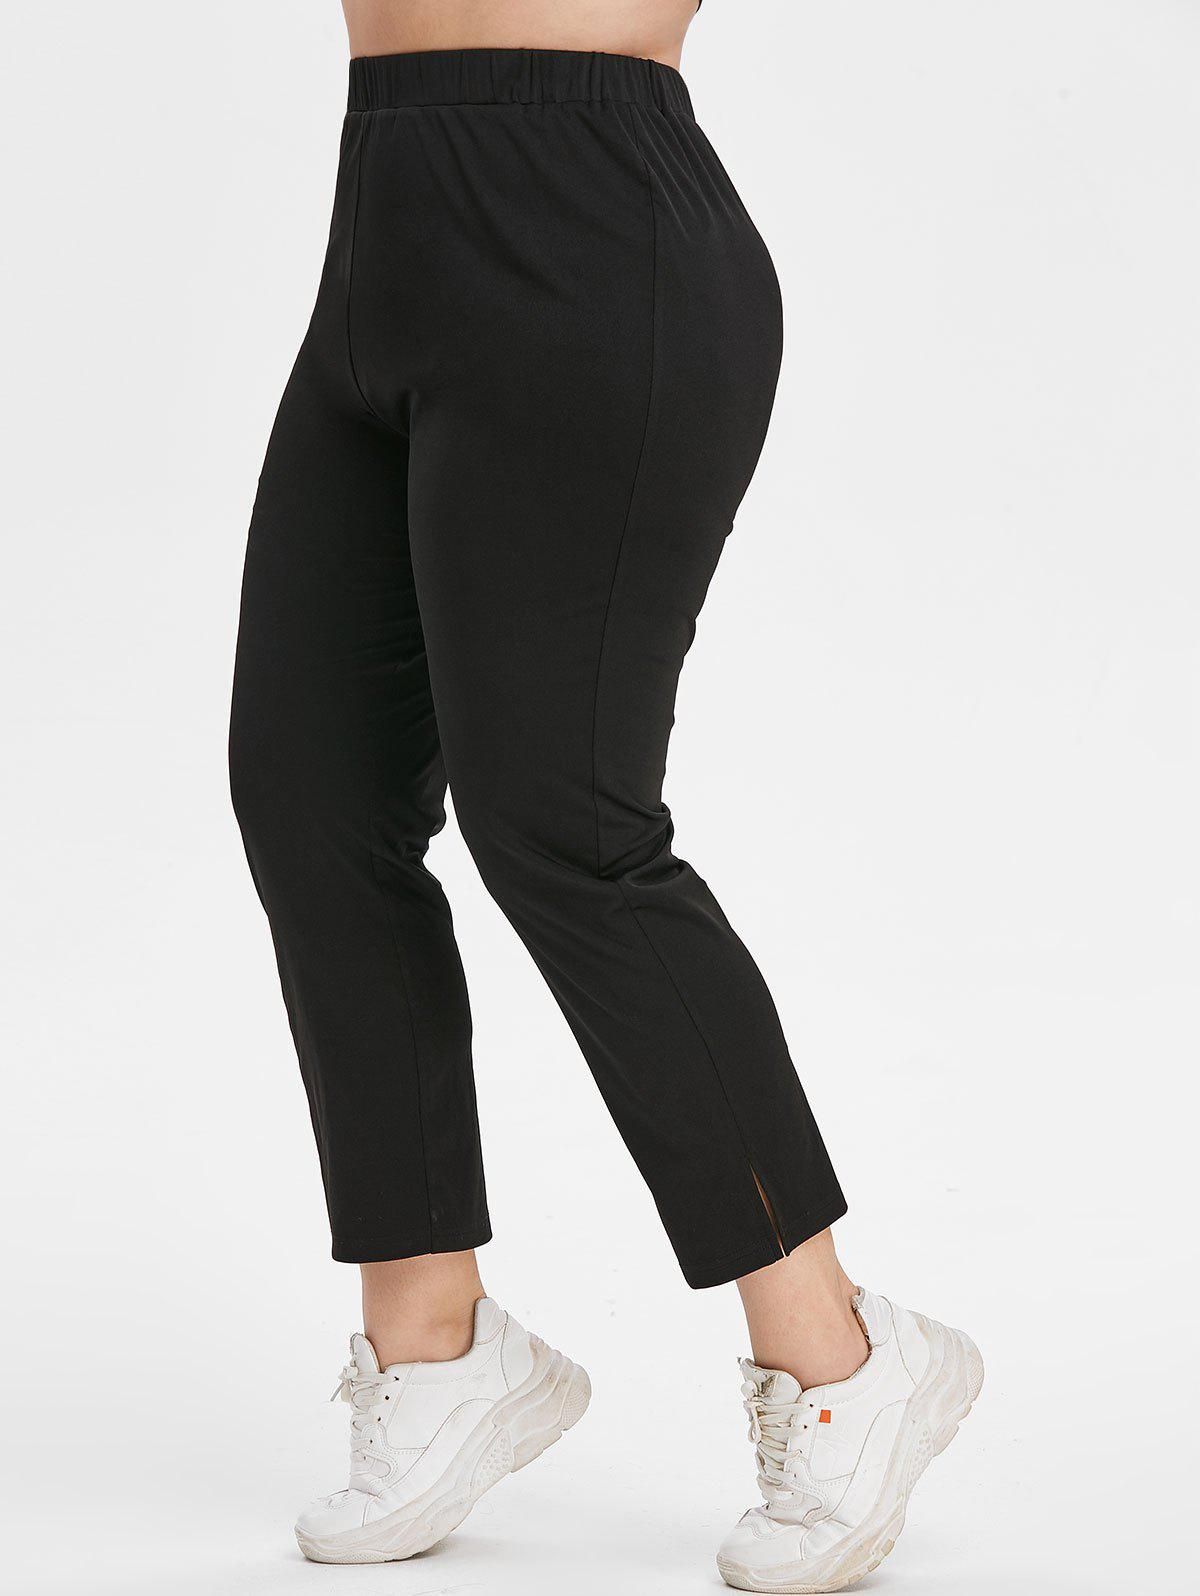 Plus Size Side Slit High Waisted Tapered Pants - BLACK 5X